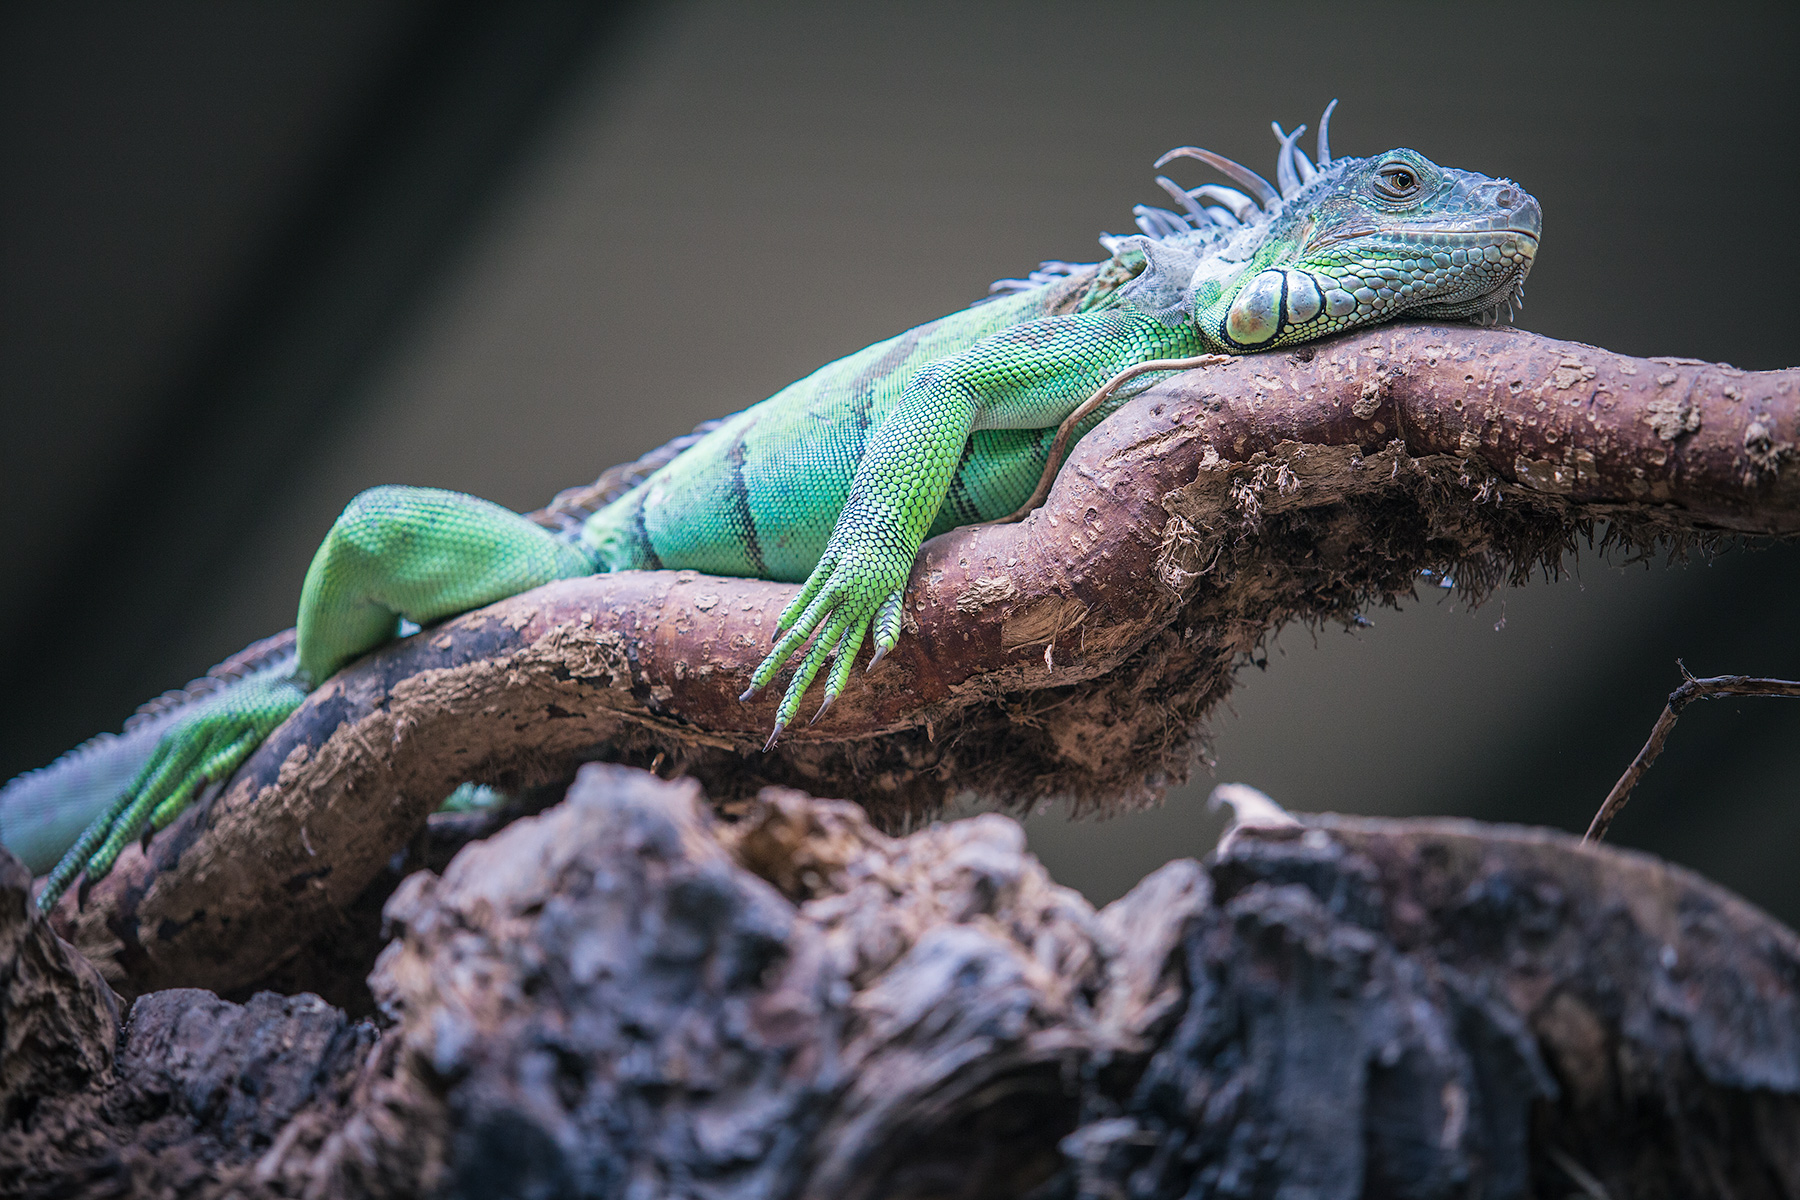 sad_iguana_fota_wildlife